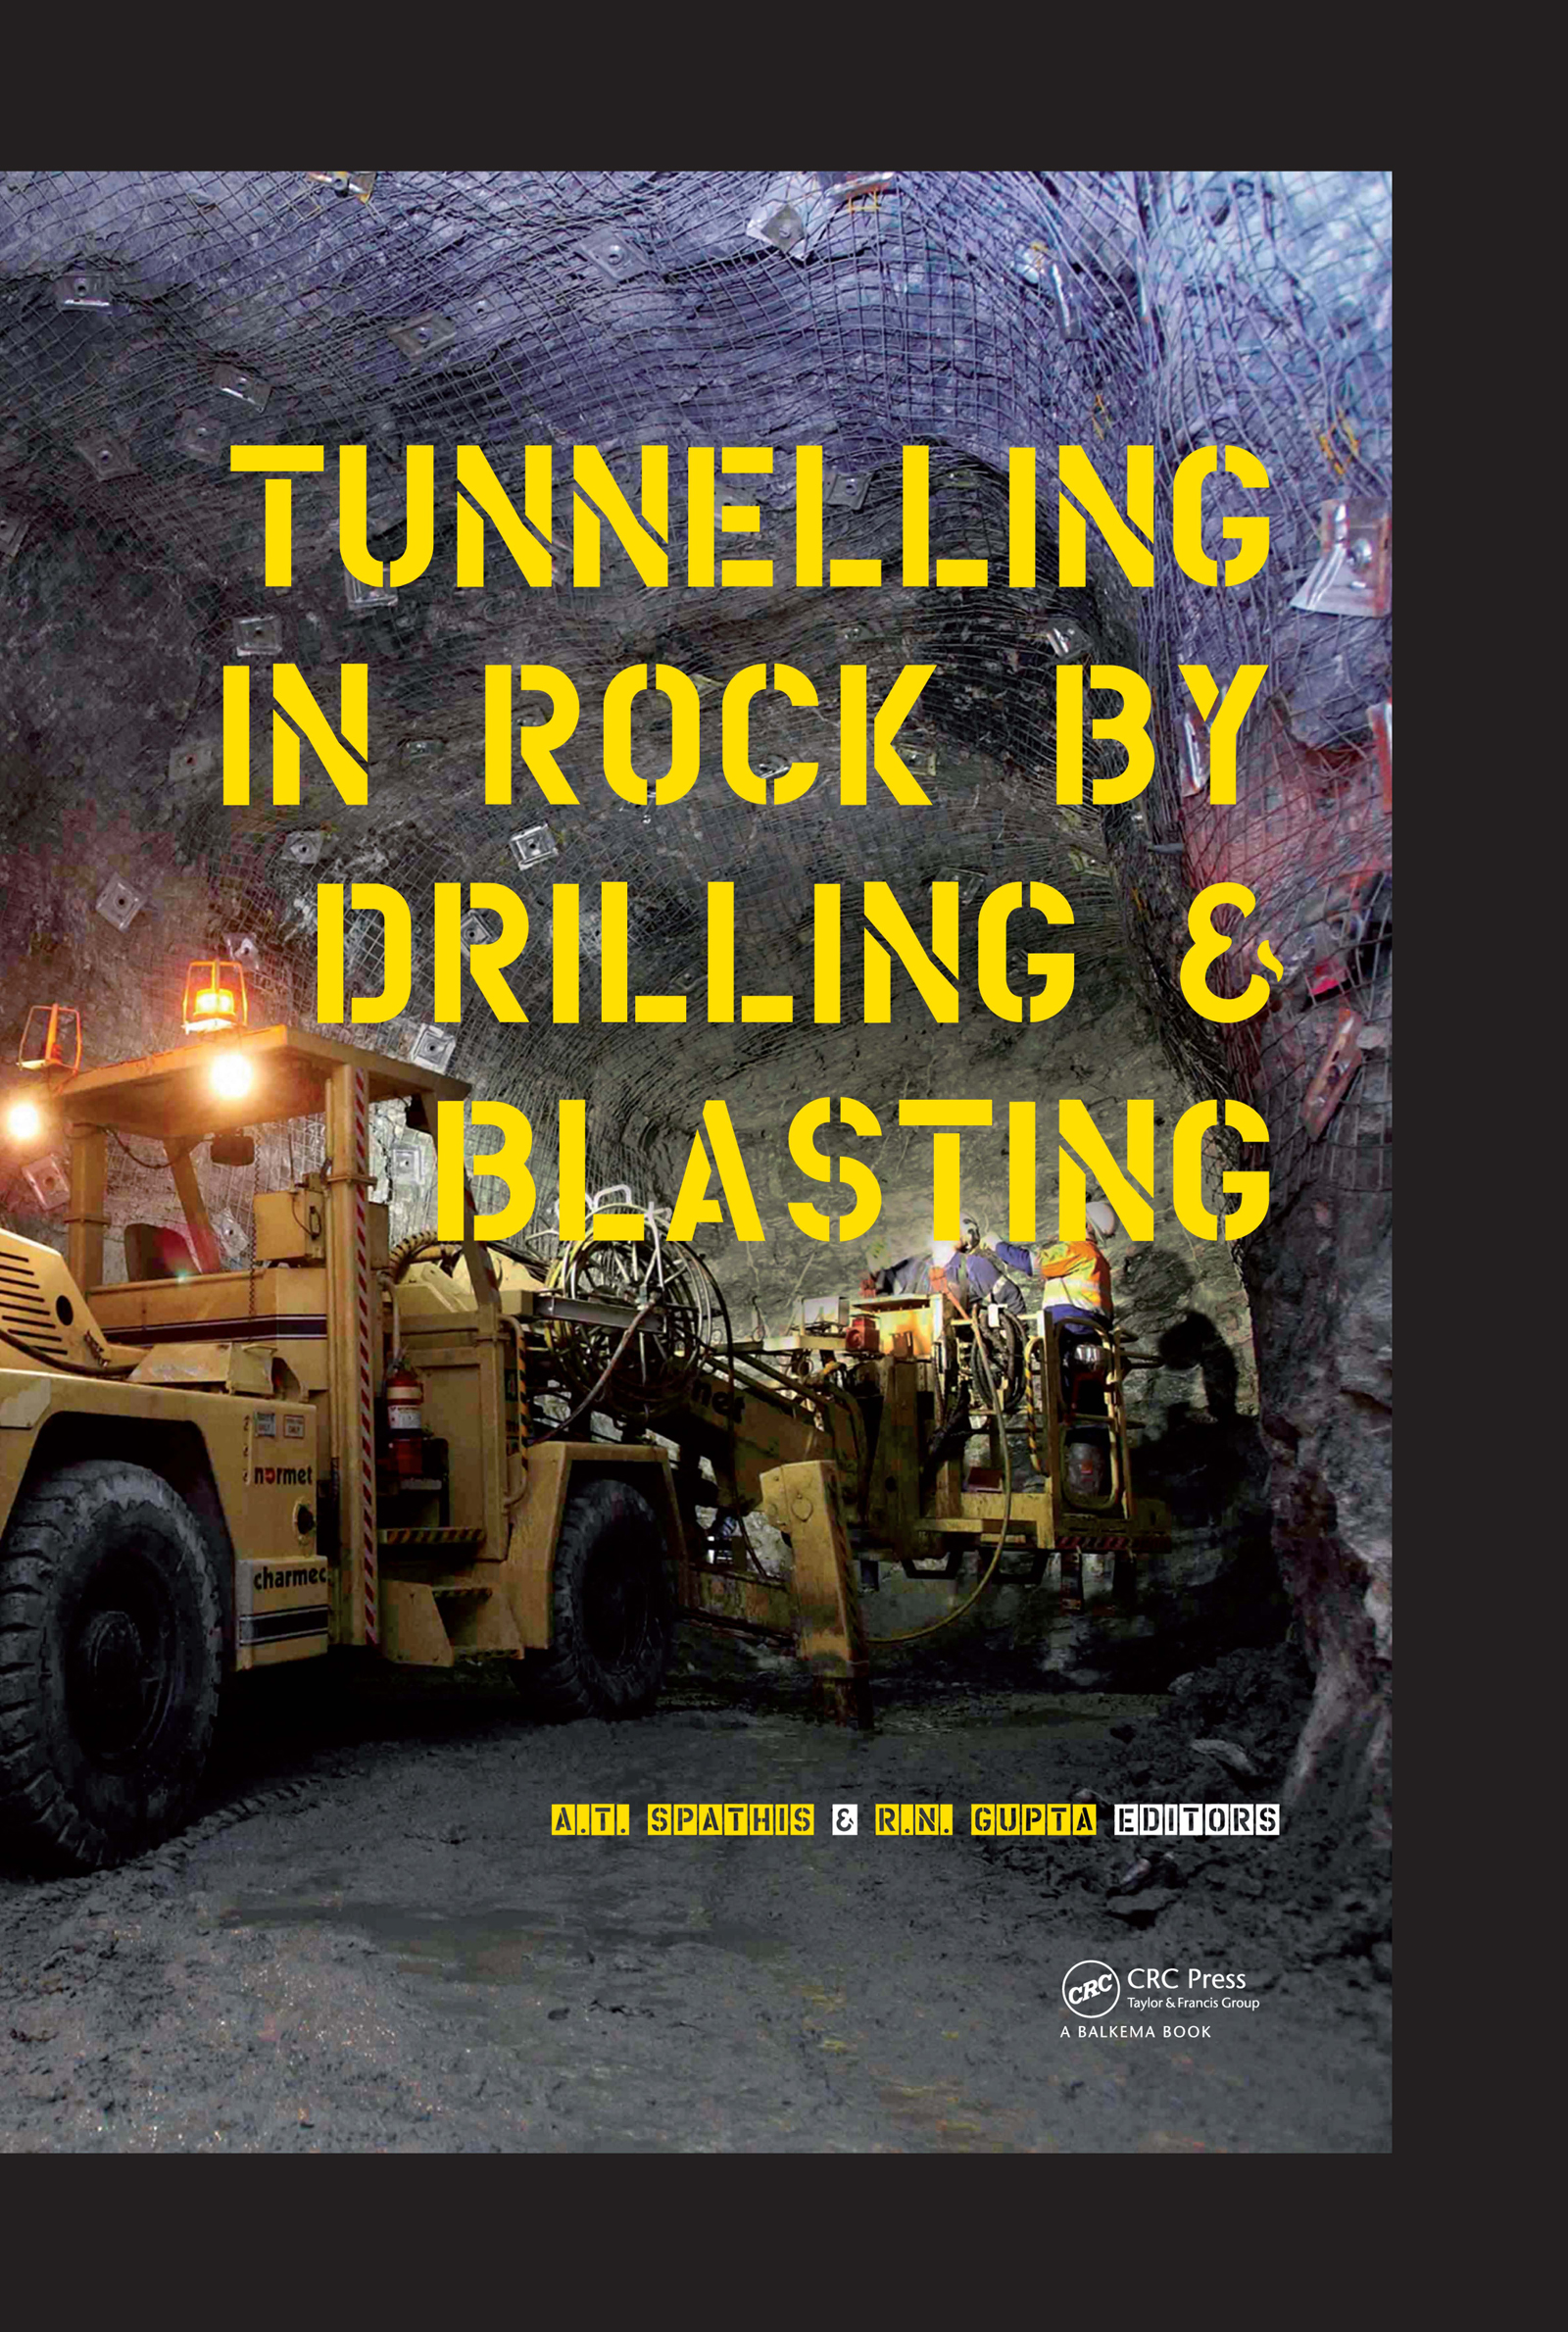 Tunneling in Rock by Drilling and Blasting (Pack - Book and CD) book cover